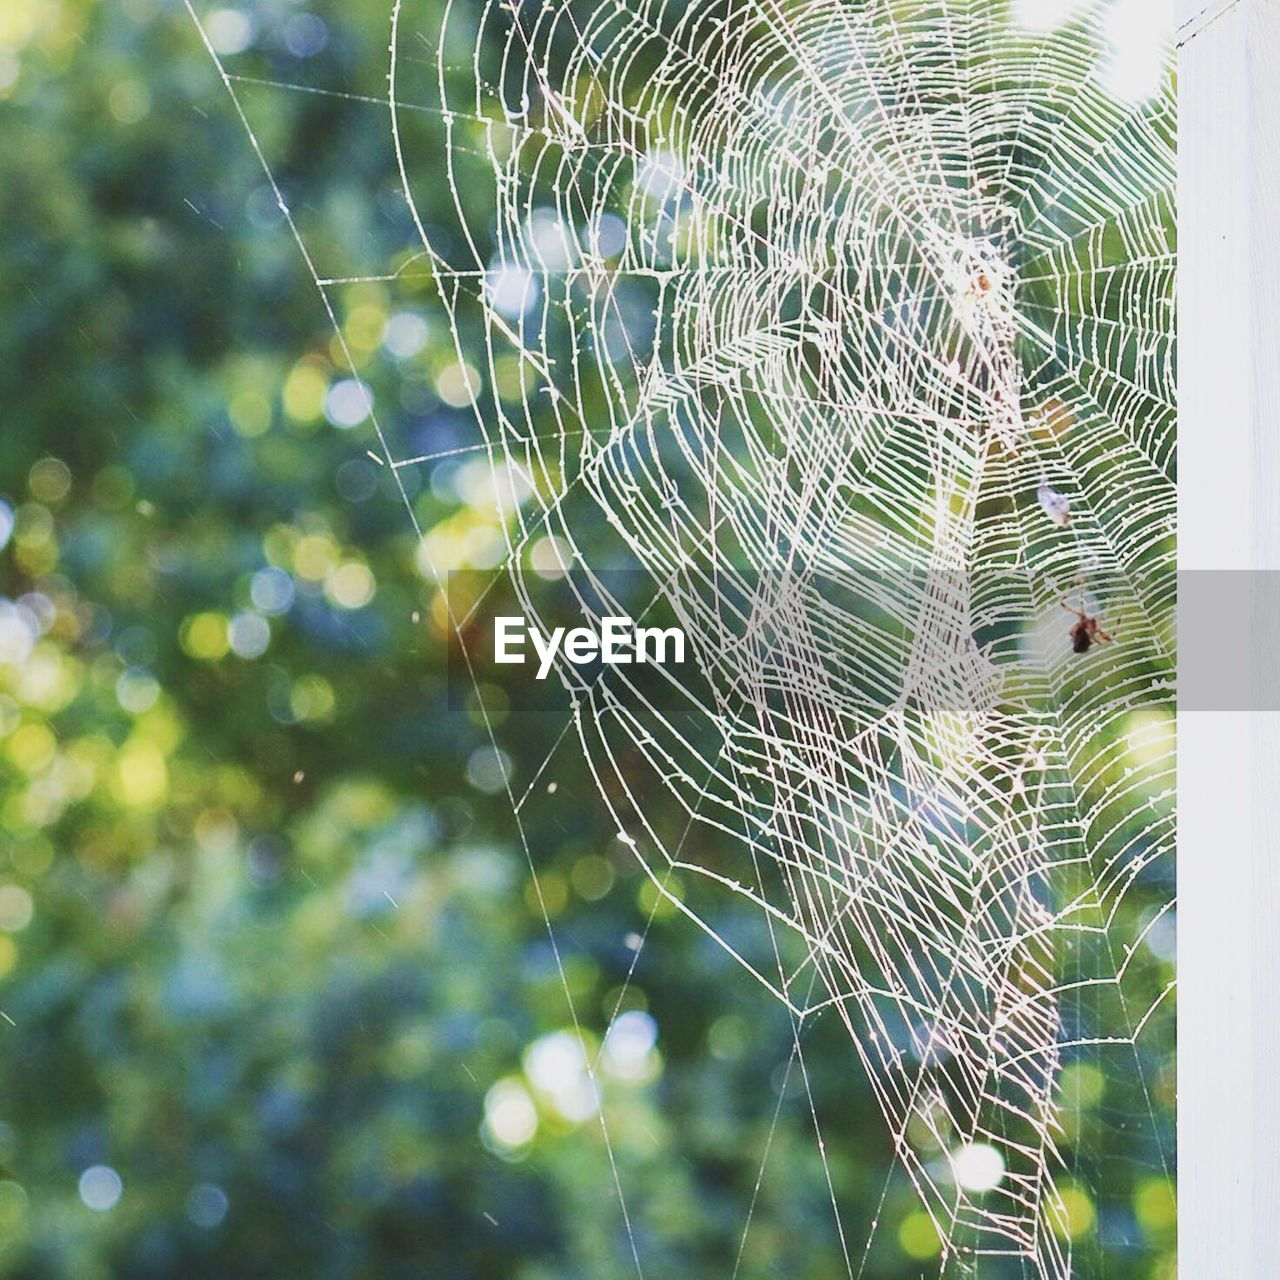 spider web, web, focus on foreground, spider, nature, close-up, outdoors, no people, fragility, day, trapped, intricacy, one animal, survival, beauty in nature, weaving, complexity, animal themes, freshness